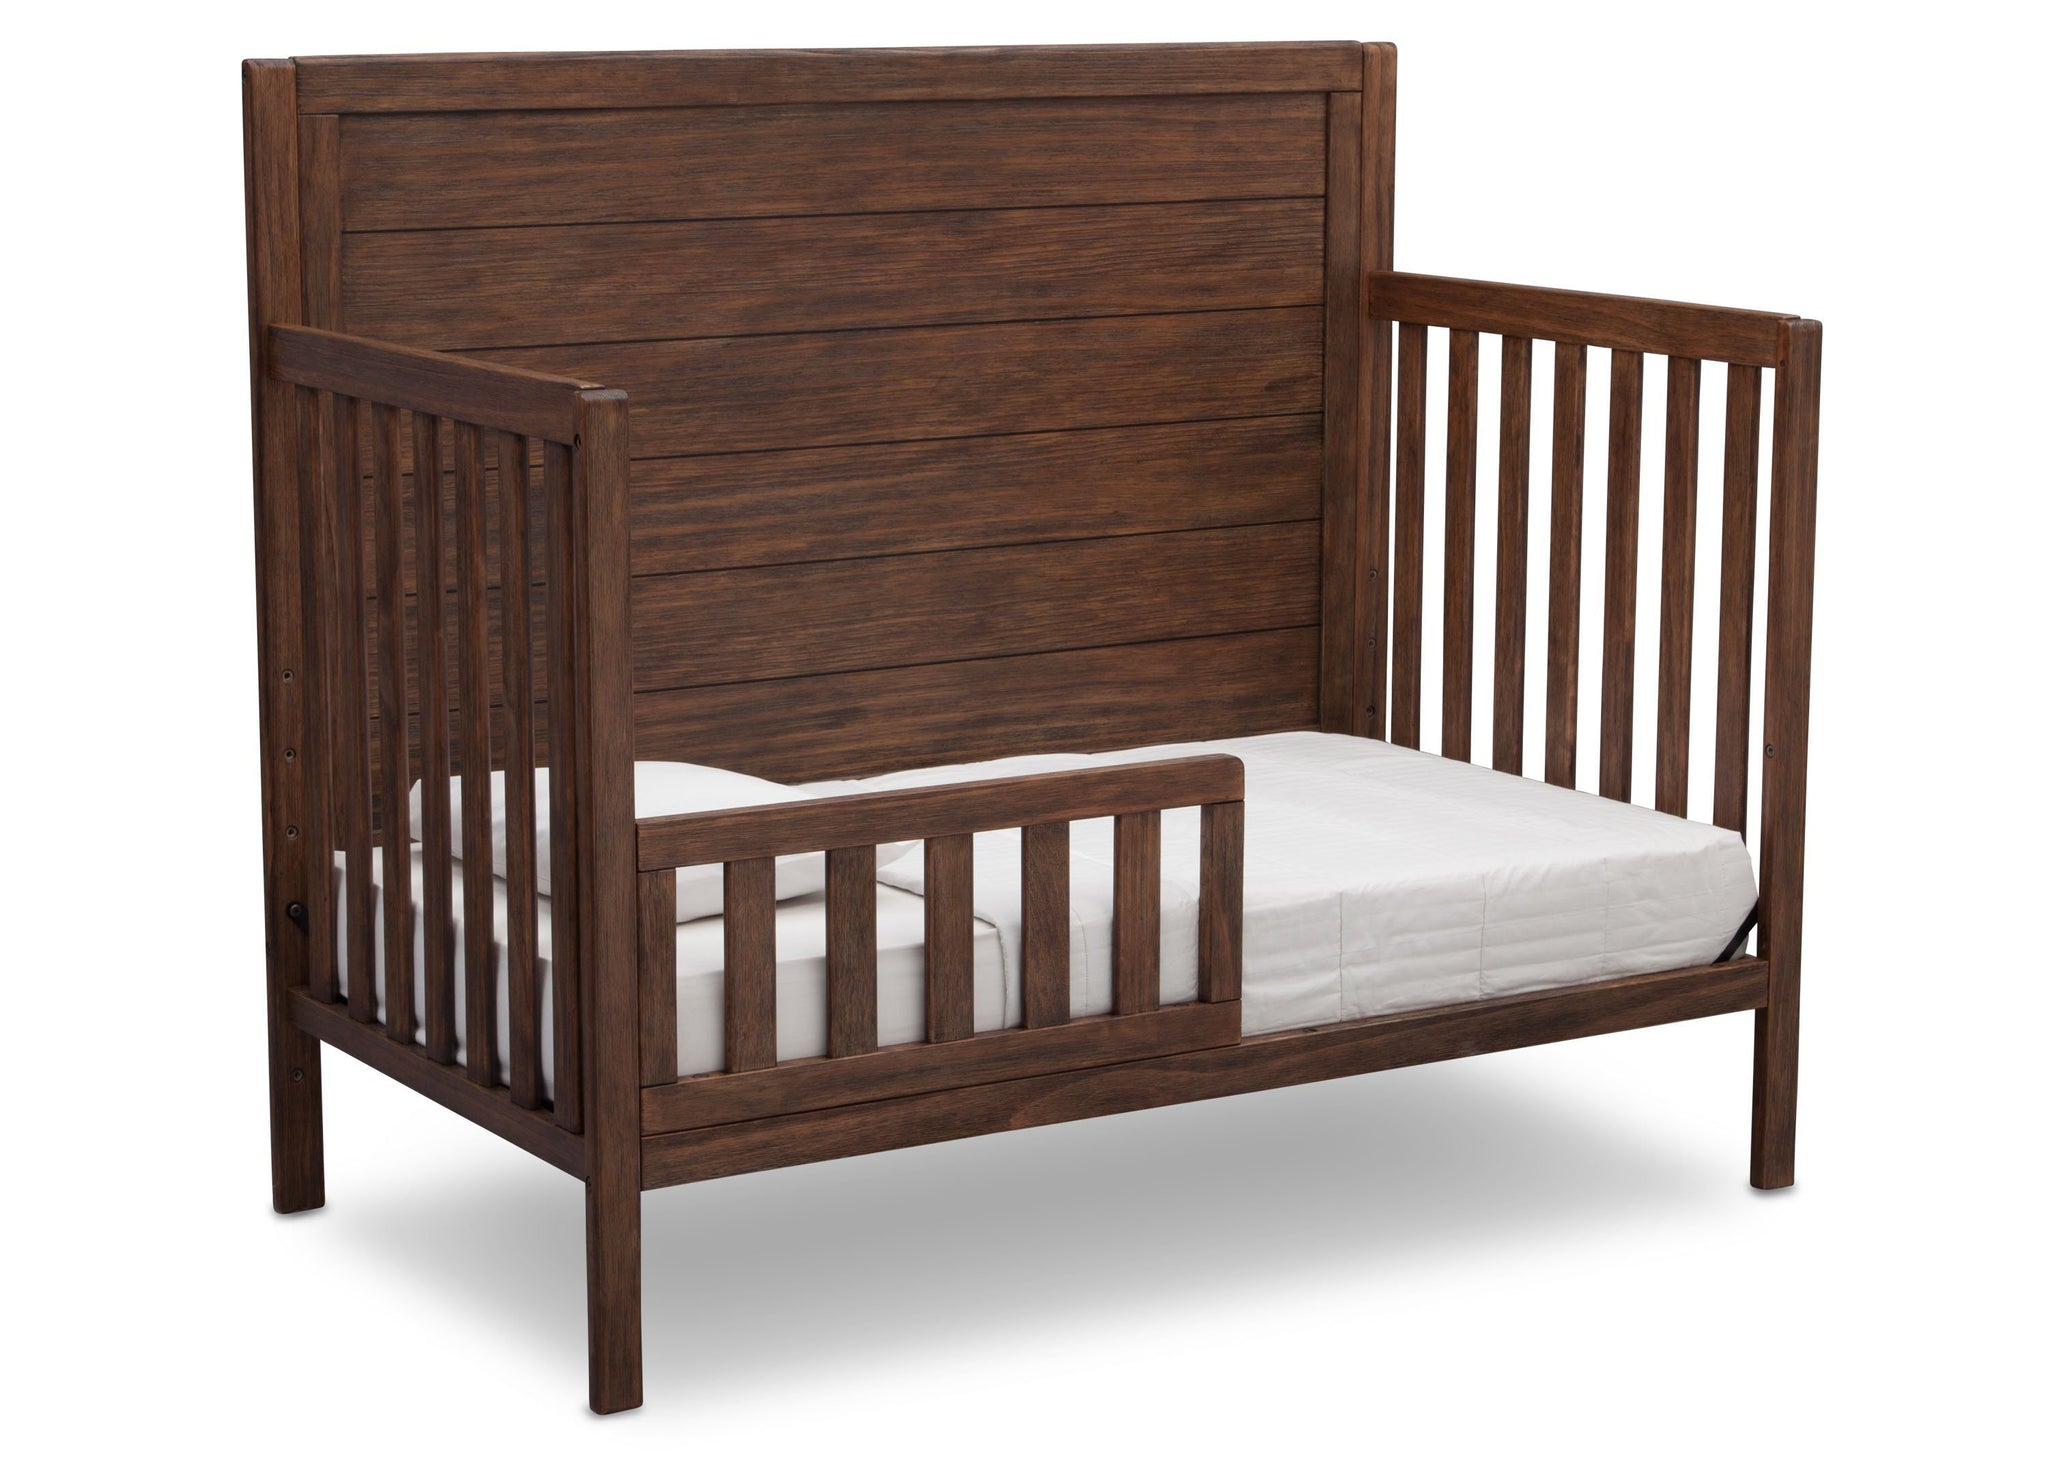 Serta Rustic Oak (229) Cambridge 4-in-1 Convertibel Crib, Toddle Bed View c4c